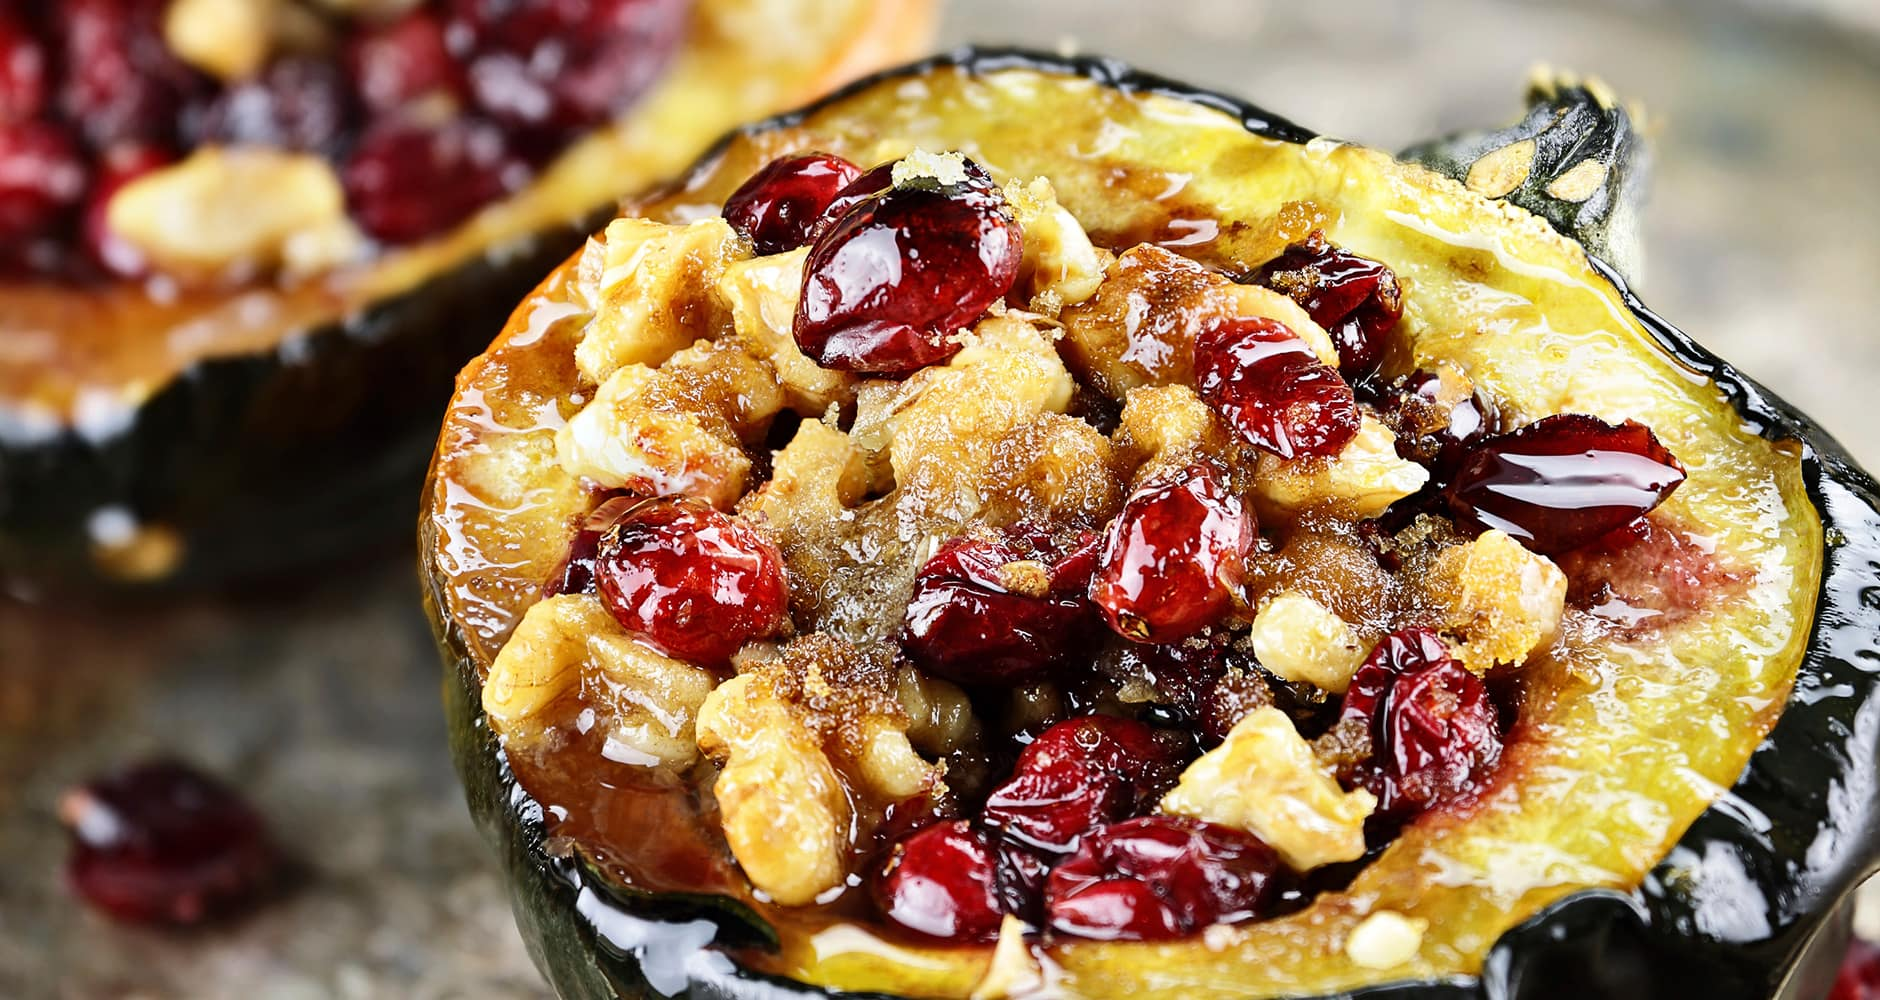 Baked Stuffed Acorn Squash With Cranberry Stuffingimage preview